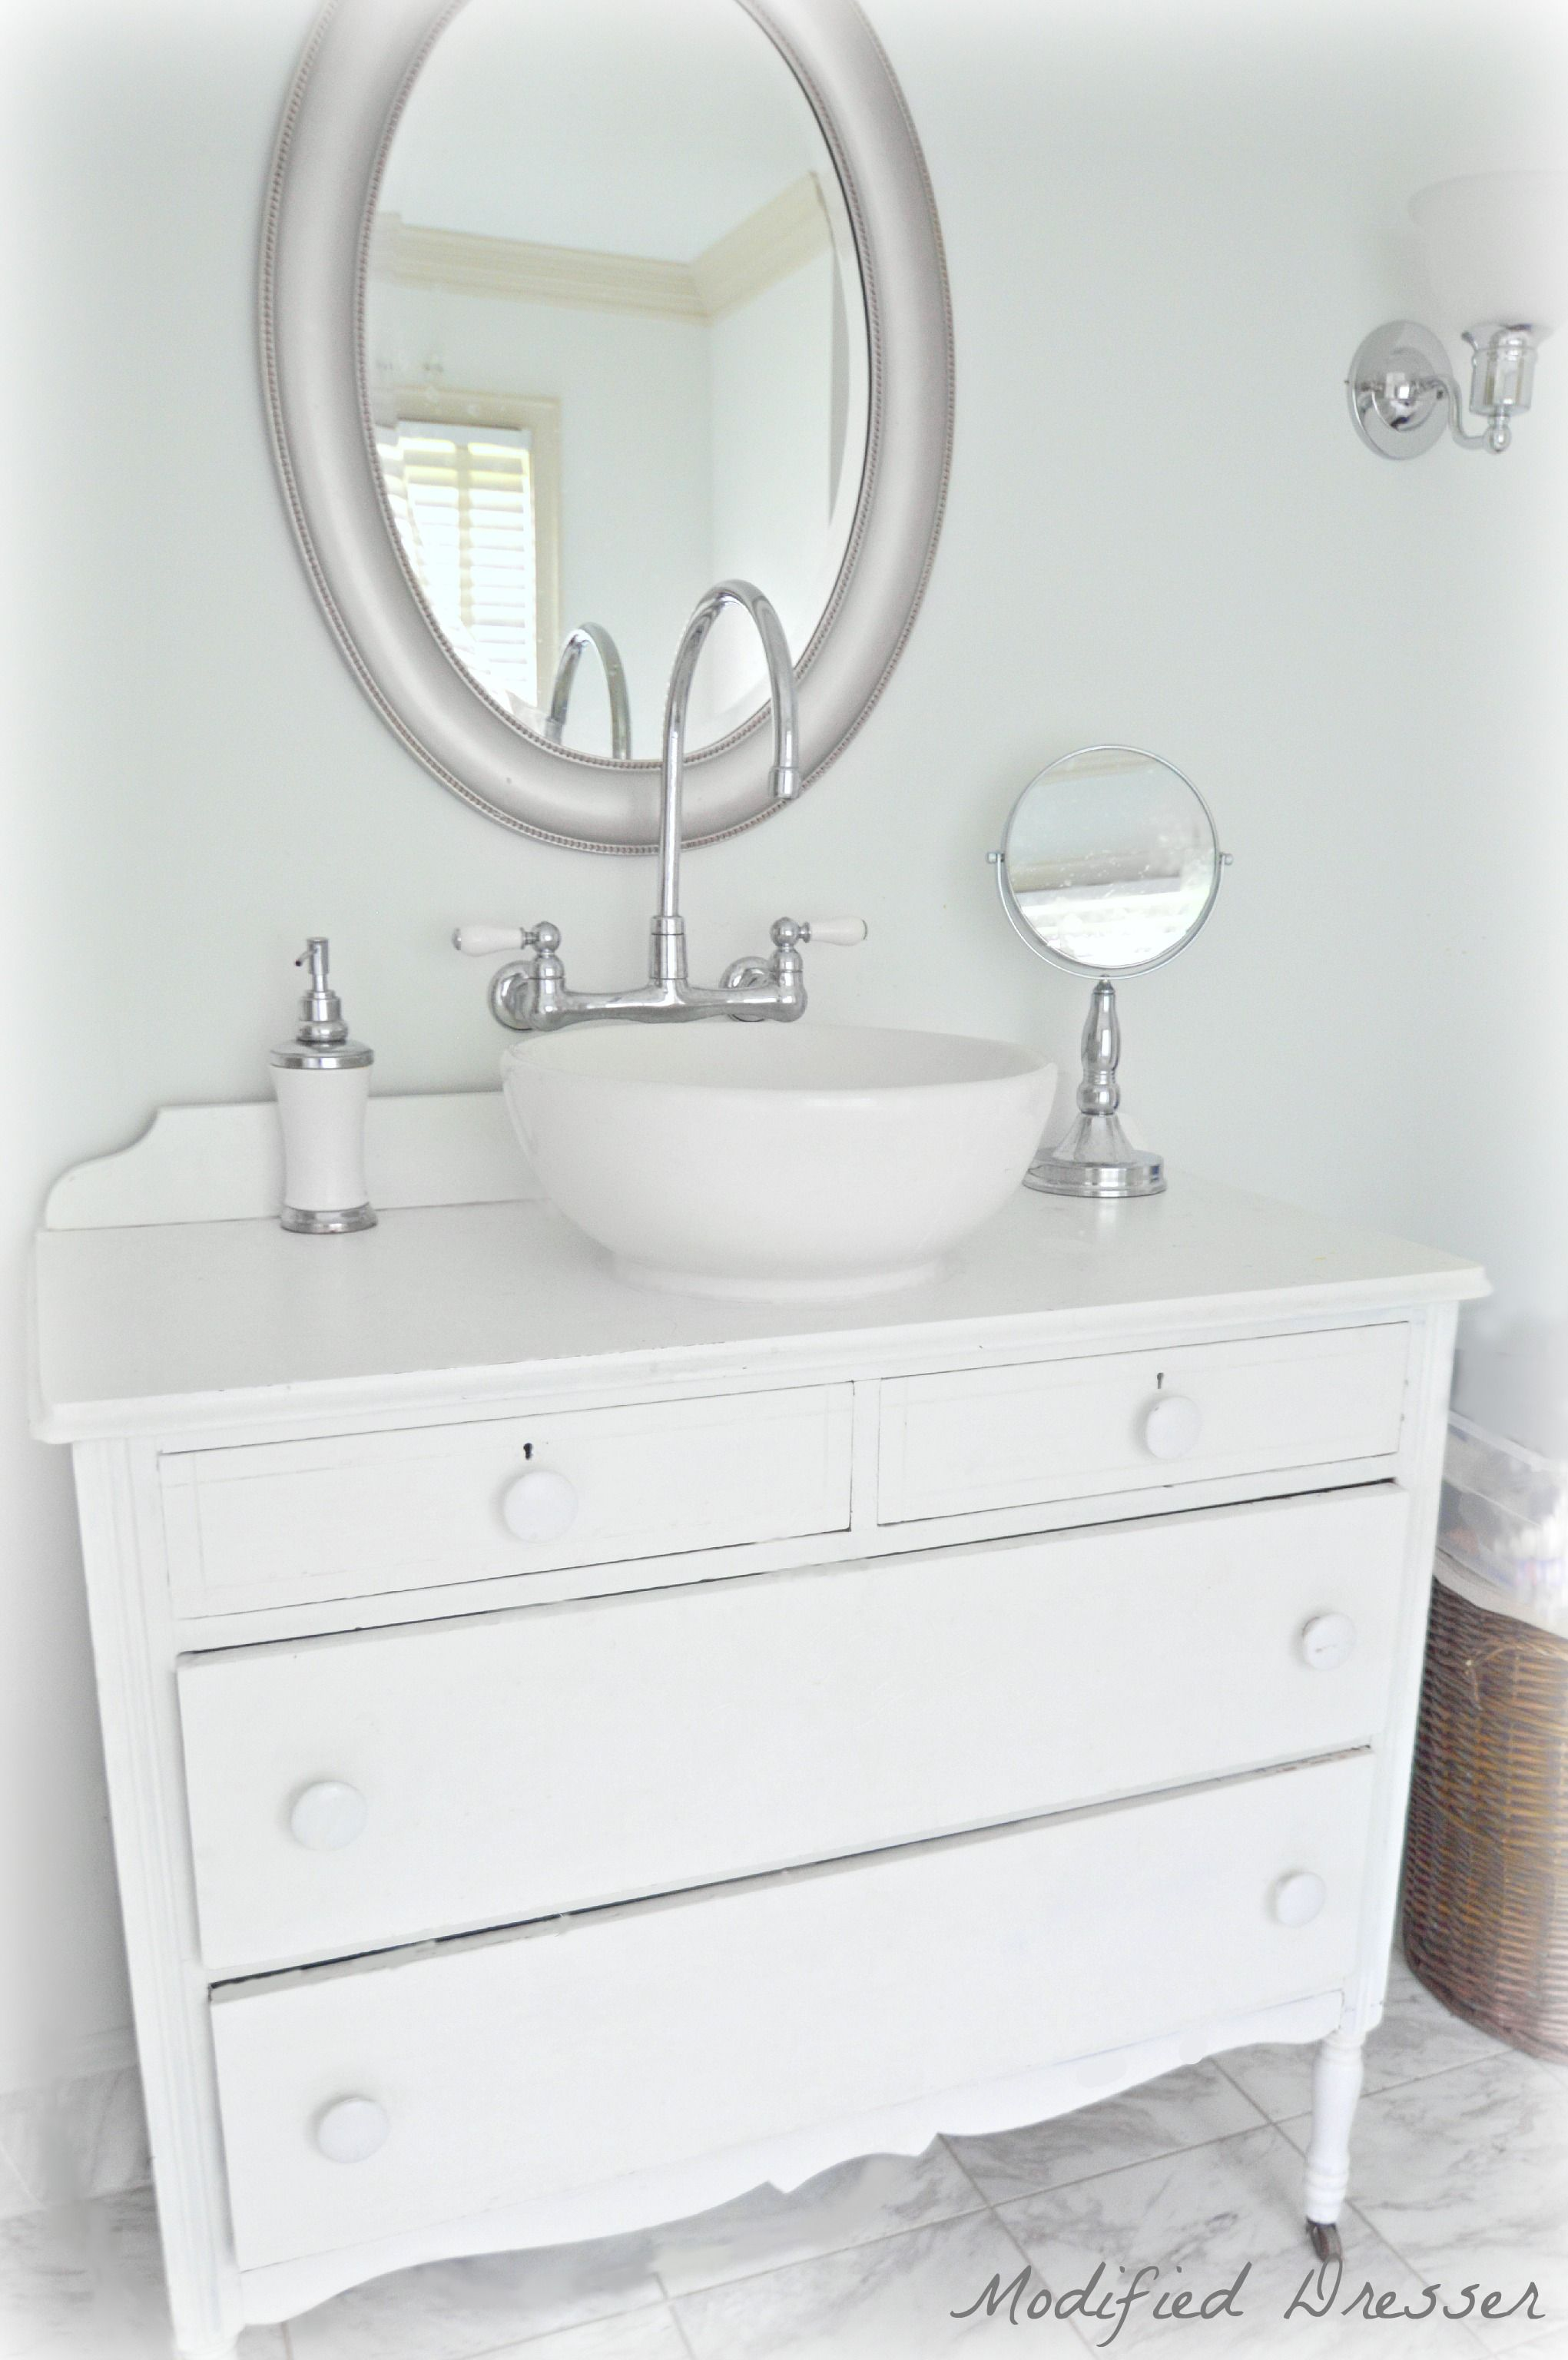 Dresser Turned Bathroom Vanity Tutorial: Dresser Turned Into Bathroom Vanity. Using Customers Old